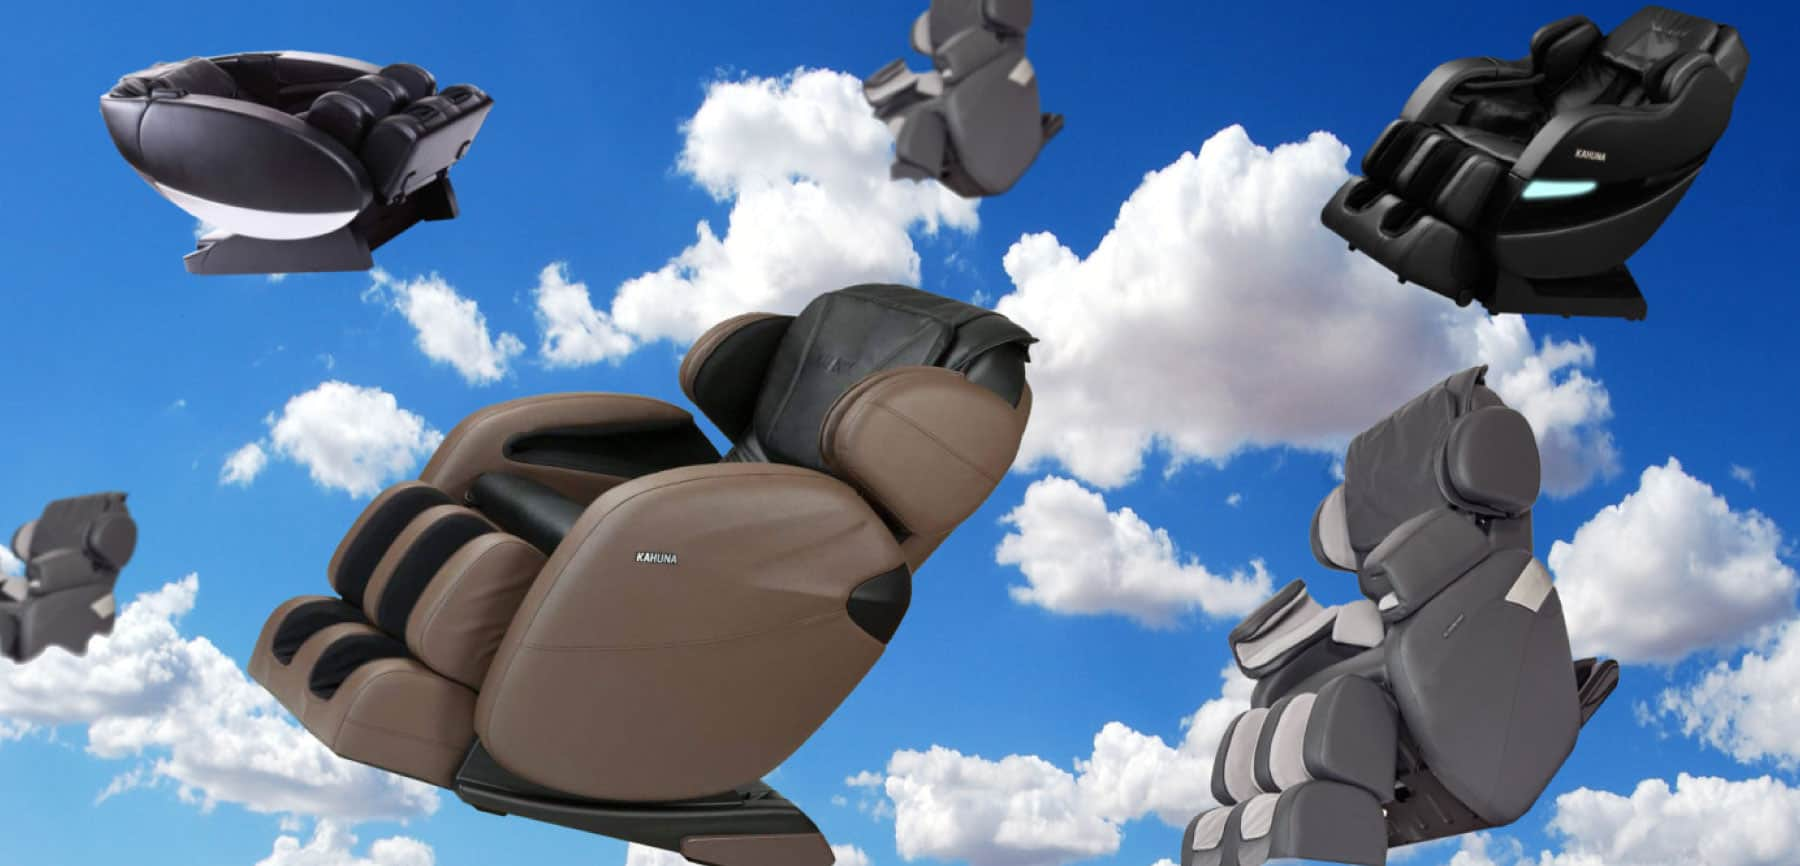 The 15 Best Massage Chairs in 2021: Shopping and User Guide